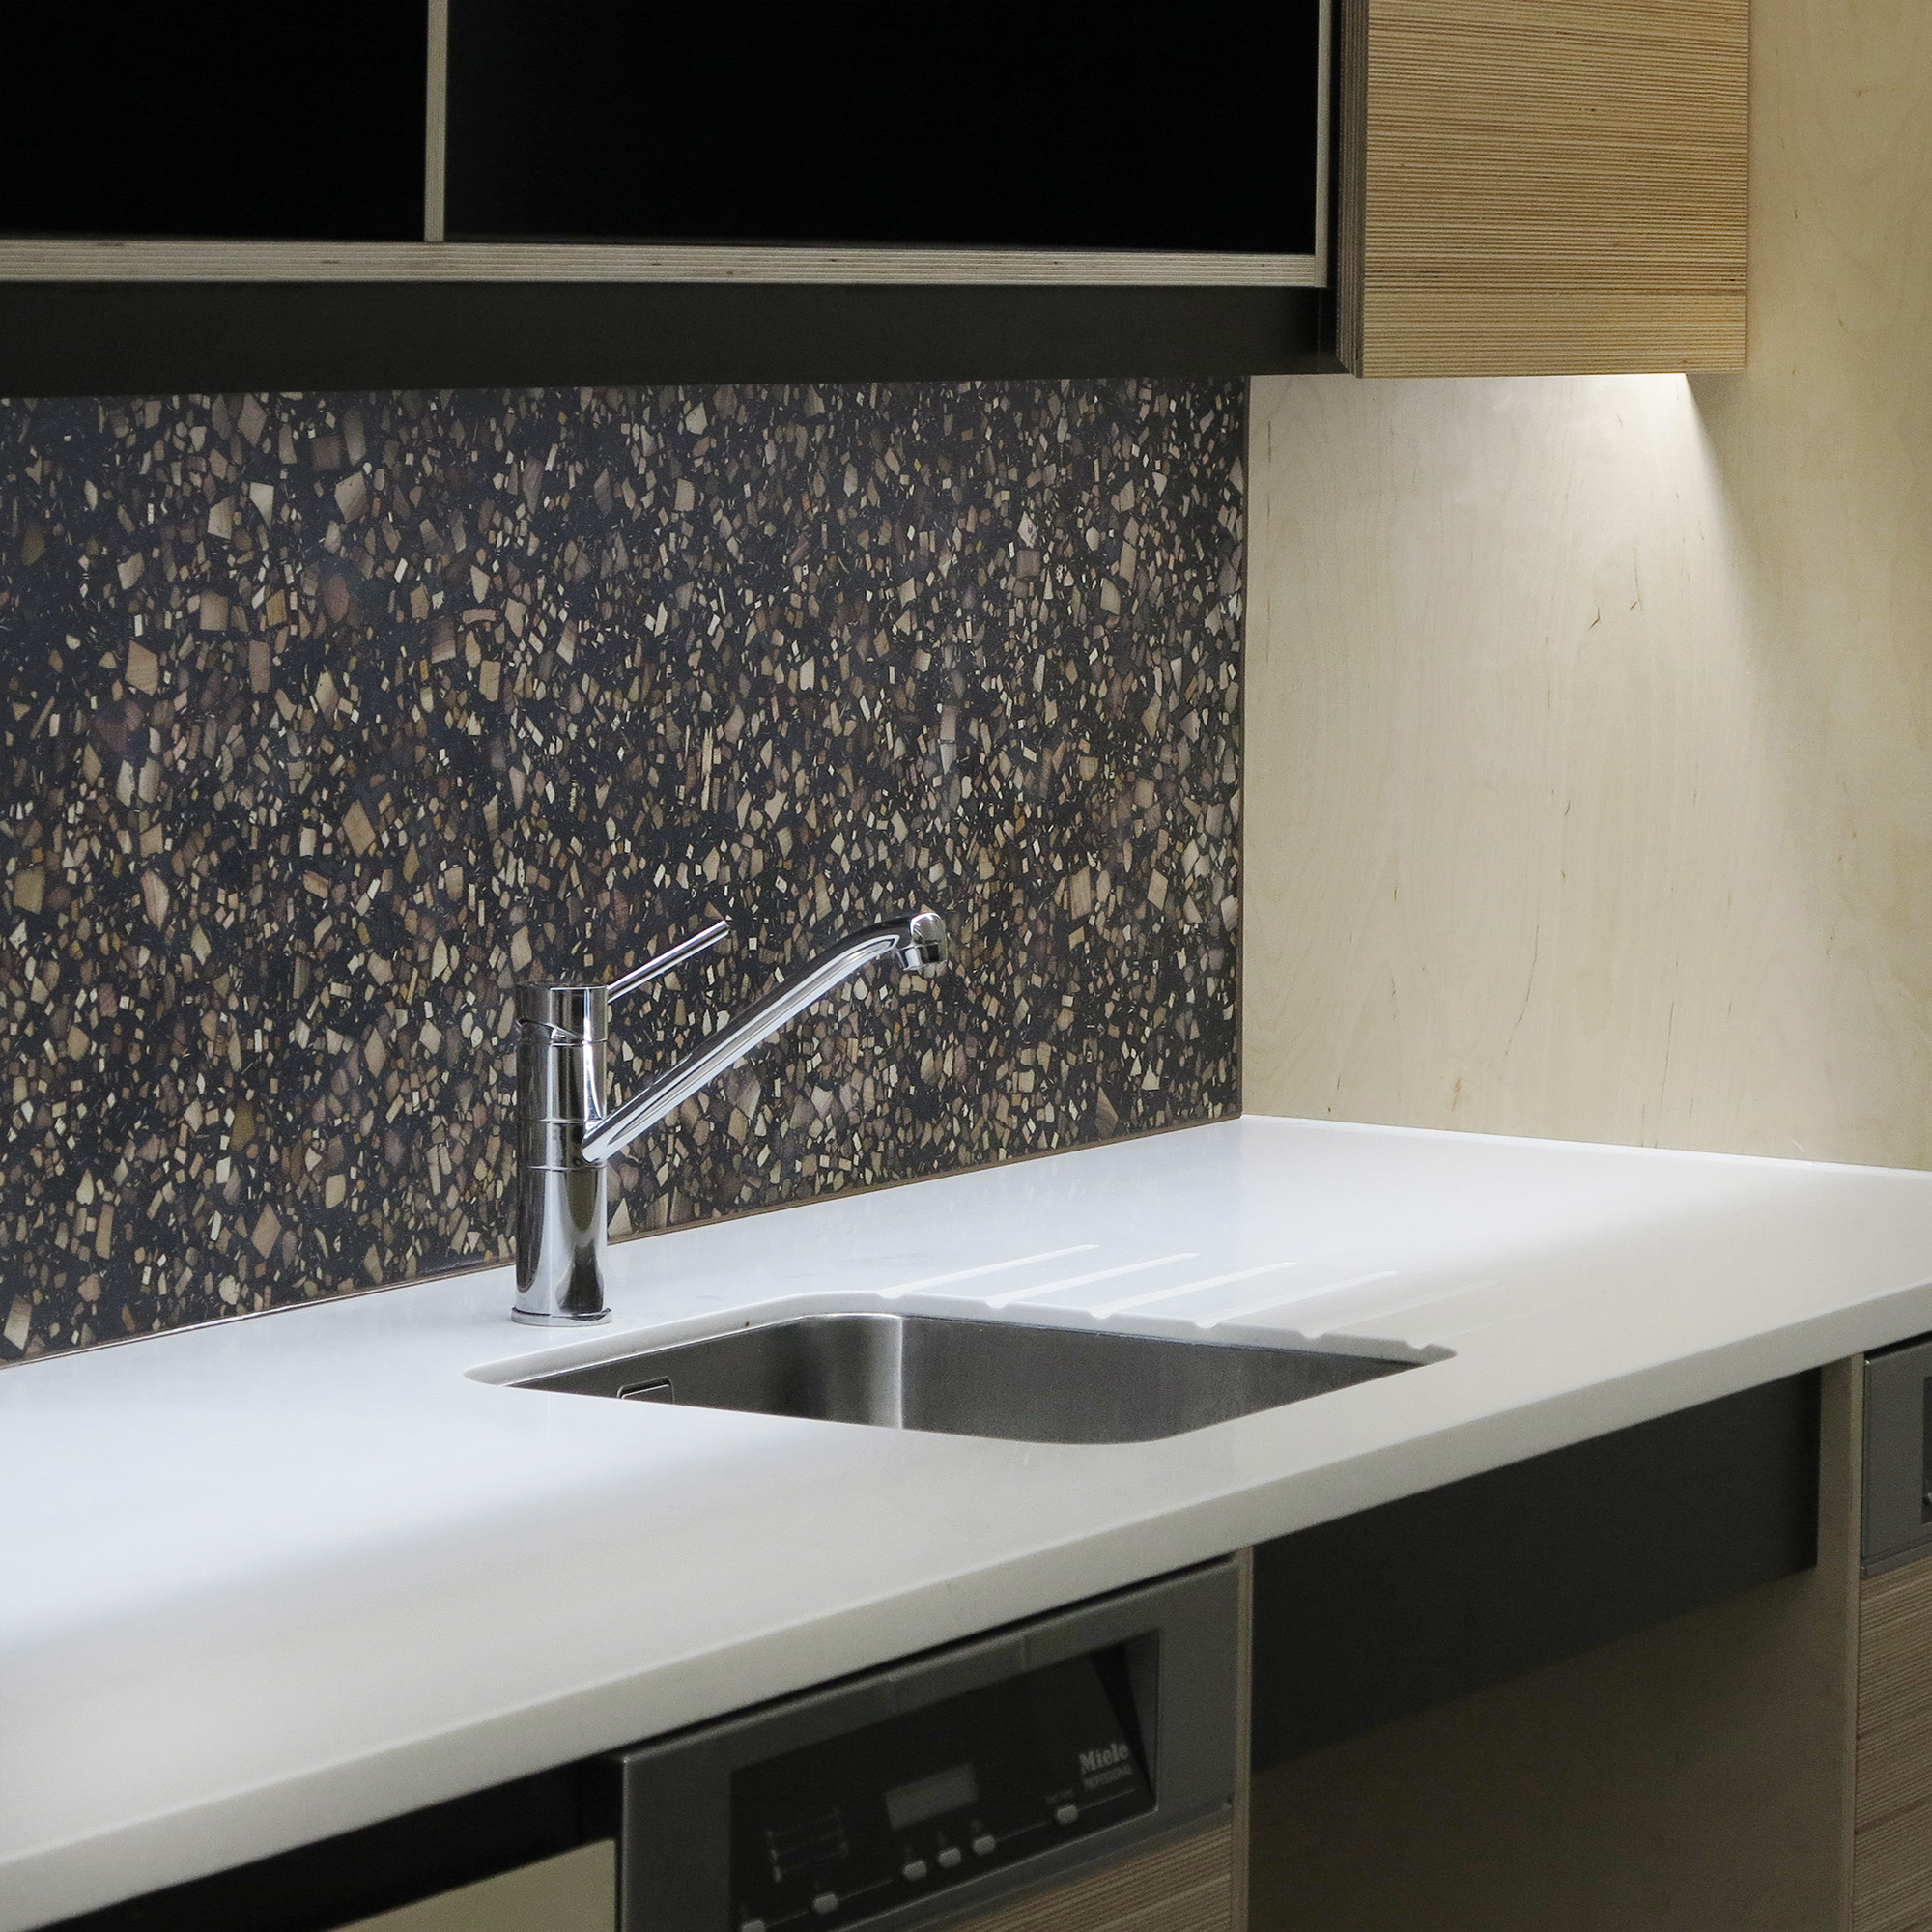 Backsplash in a communal office space.